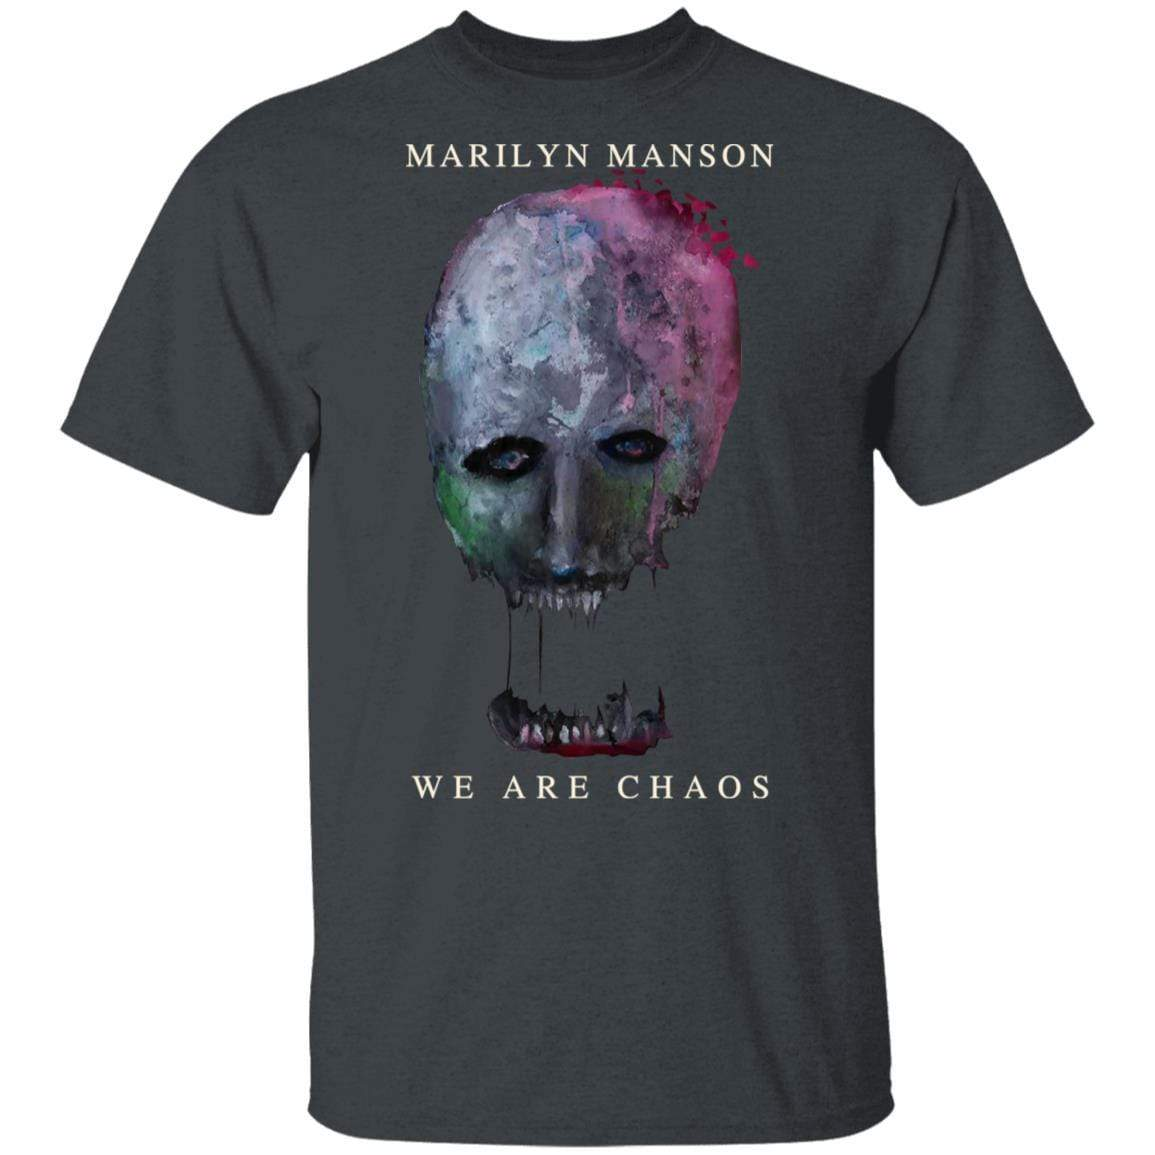 Marilyn Manson We Are Chaos T-Shirts, Hoodies 1049-9957-90279026-48192 - Tee Ript